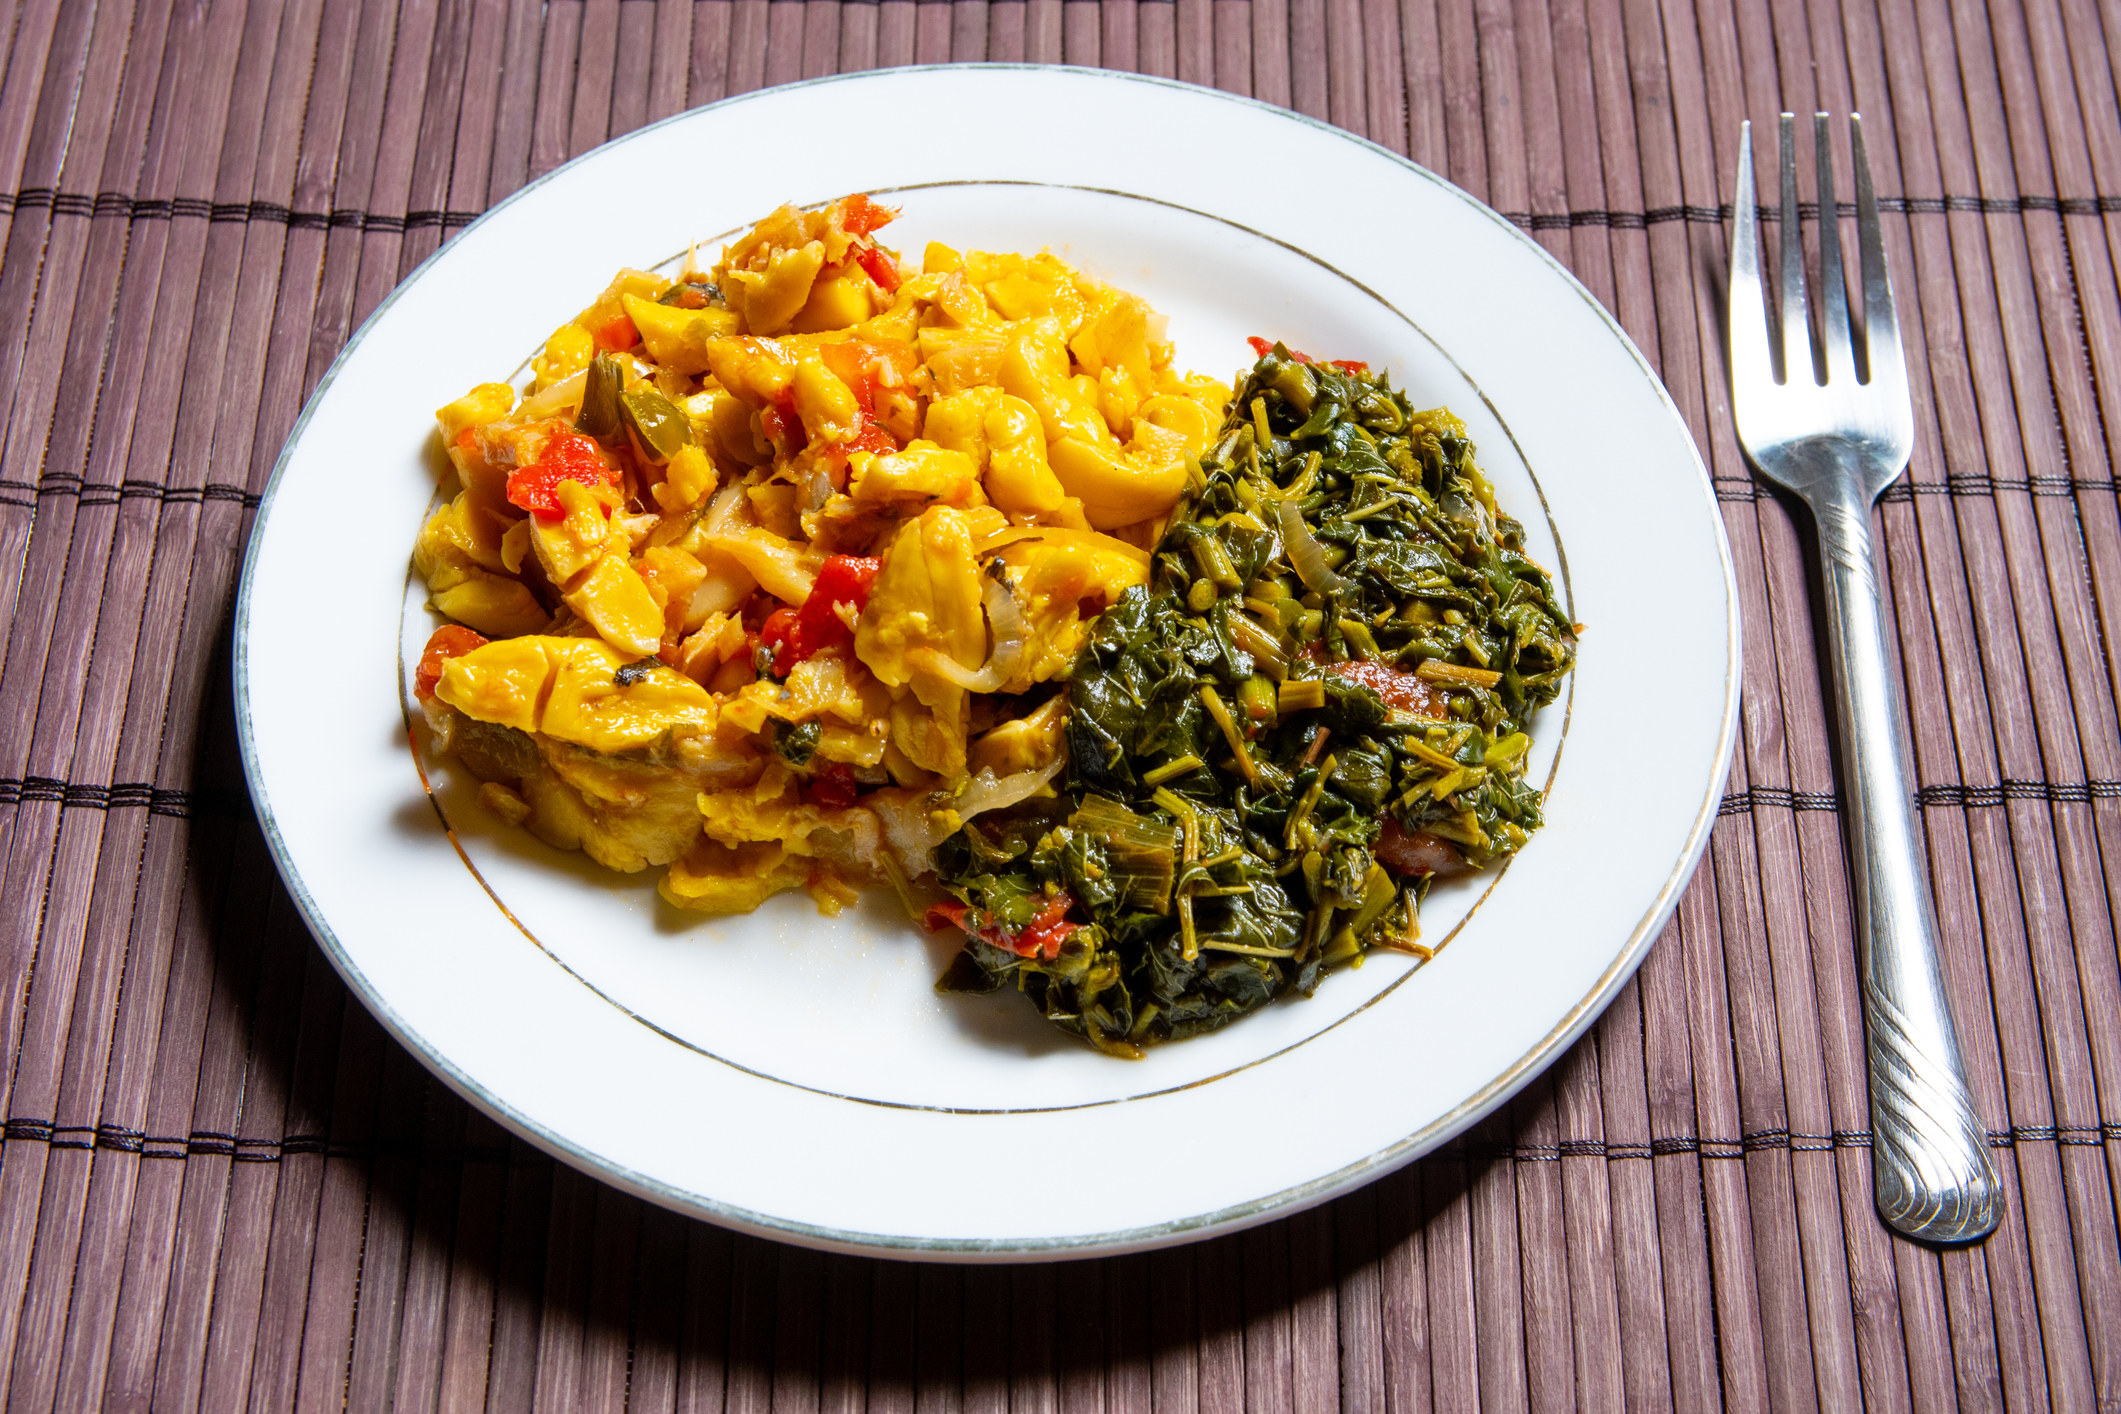 A plate of Jamaican ackee and saltfish with steamed callaloo.